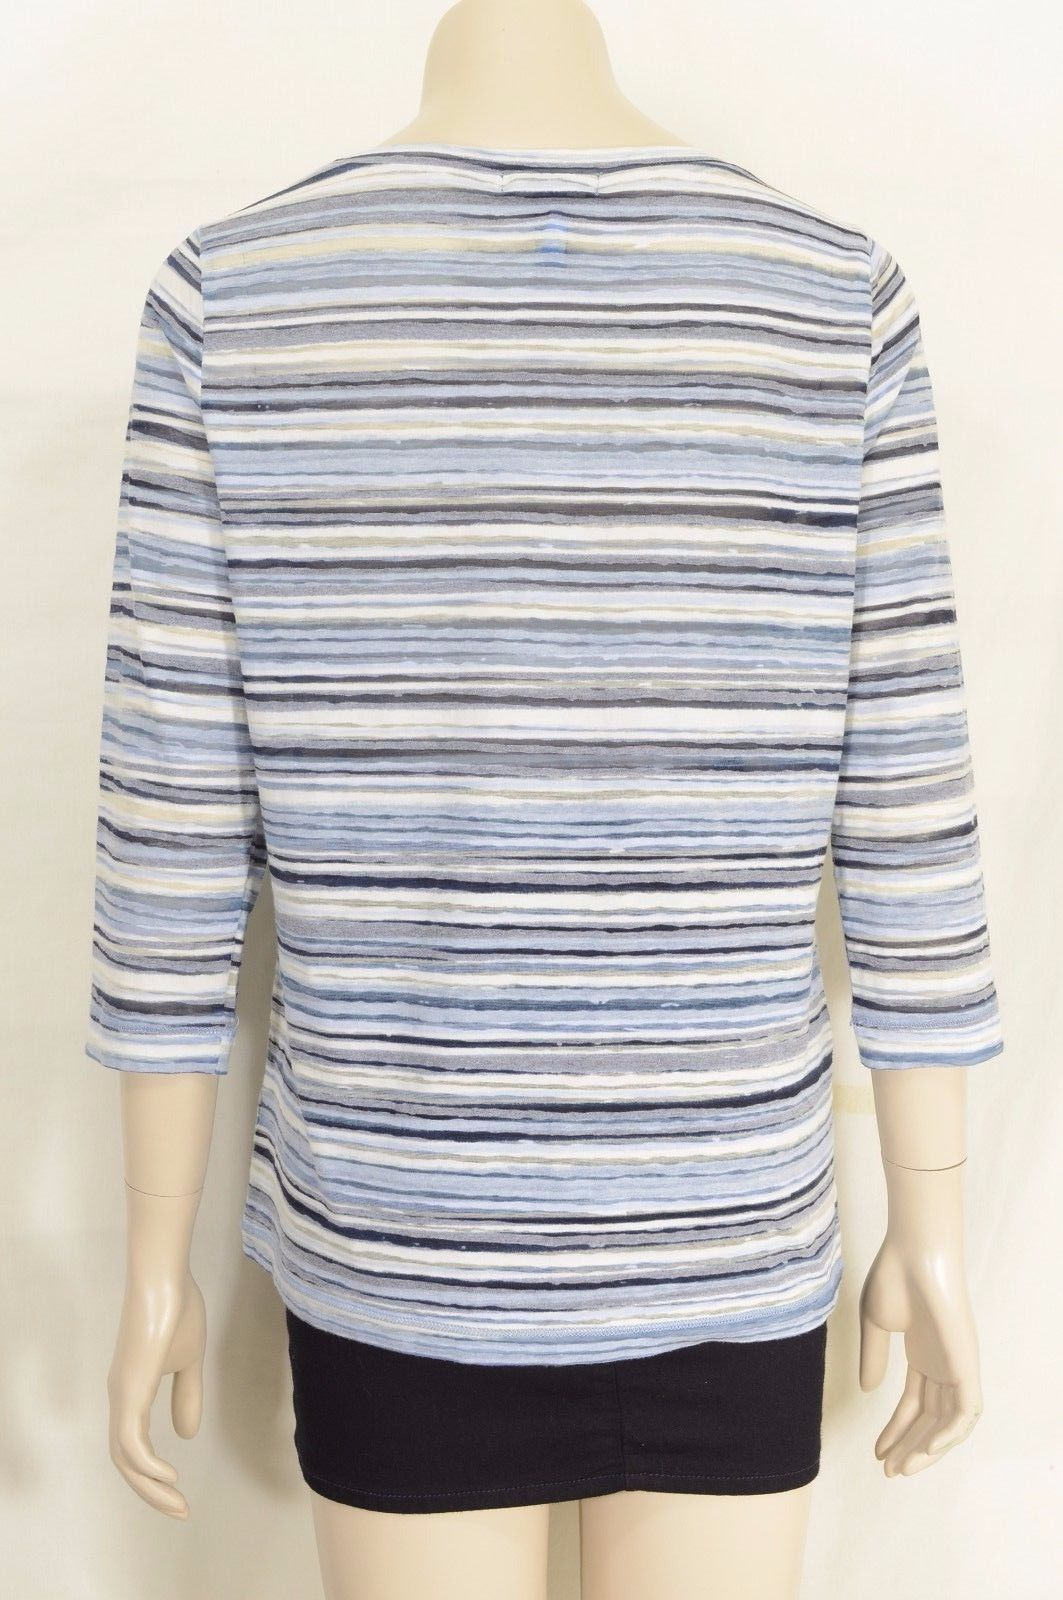 1 Ralph Lauren top M blue white stripe burnout 3/4 sleeve soft polyester cotton